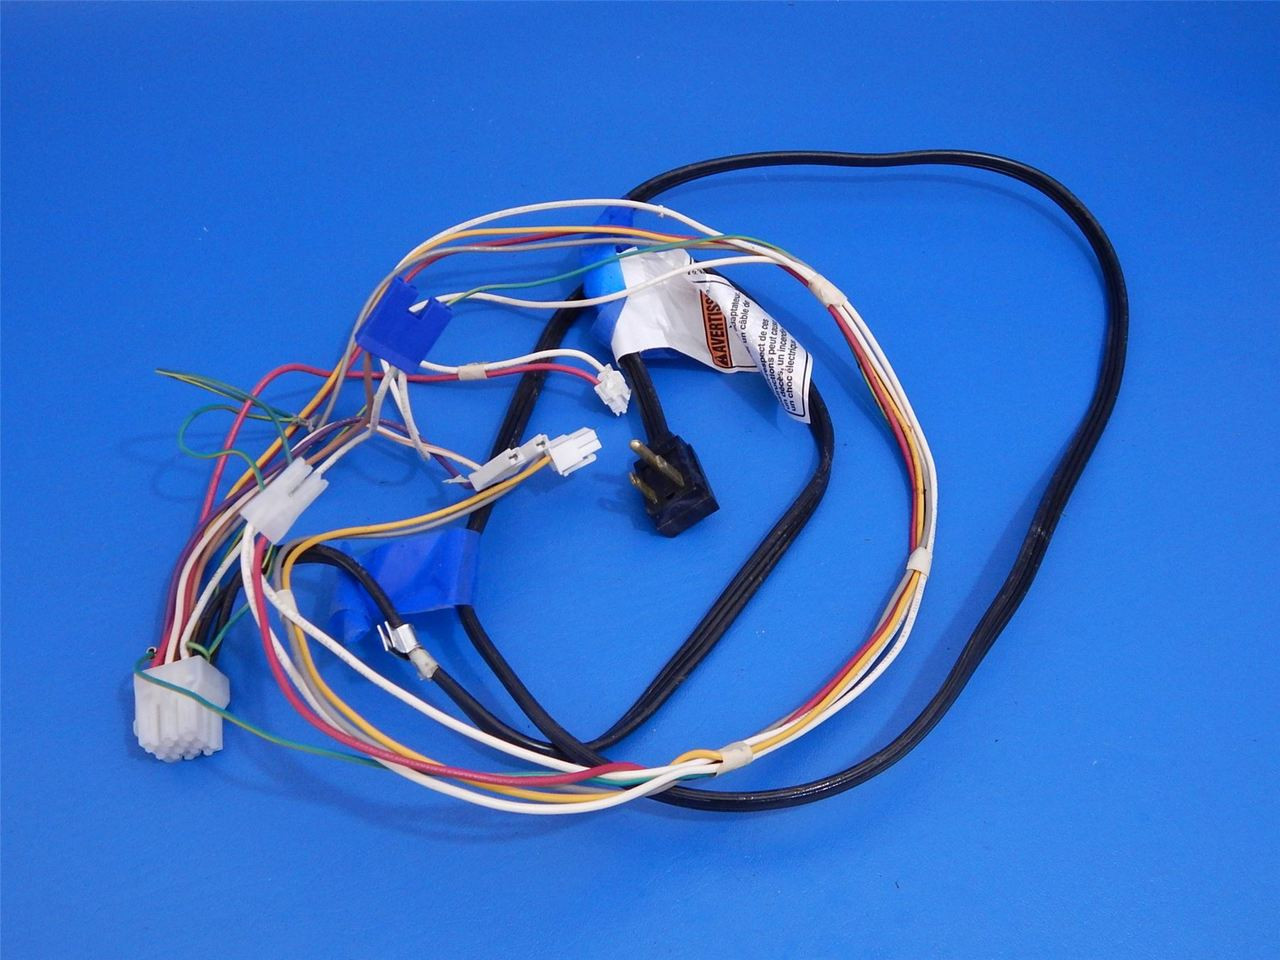 whirlpool side side refrigerator wrs325fdam02 wall plug wire harness w10417928 ice cold beer appliance parts [ 1280 x 960 Pixel ]